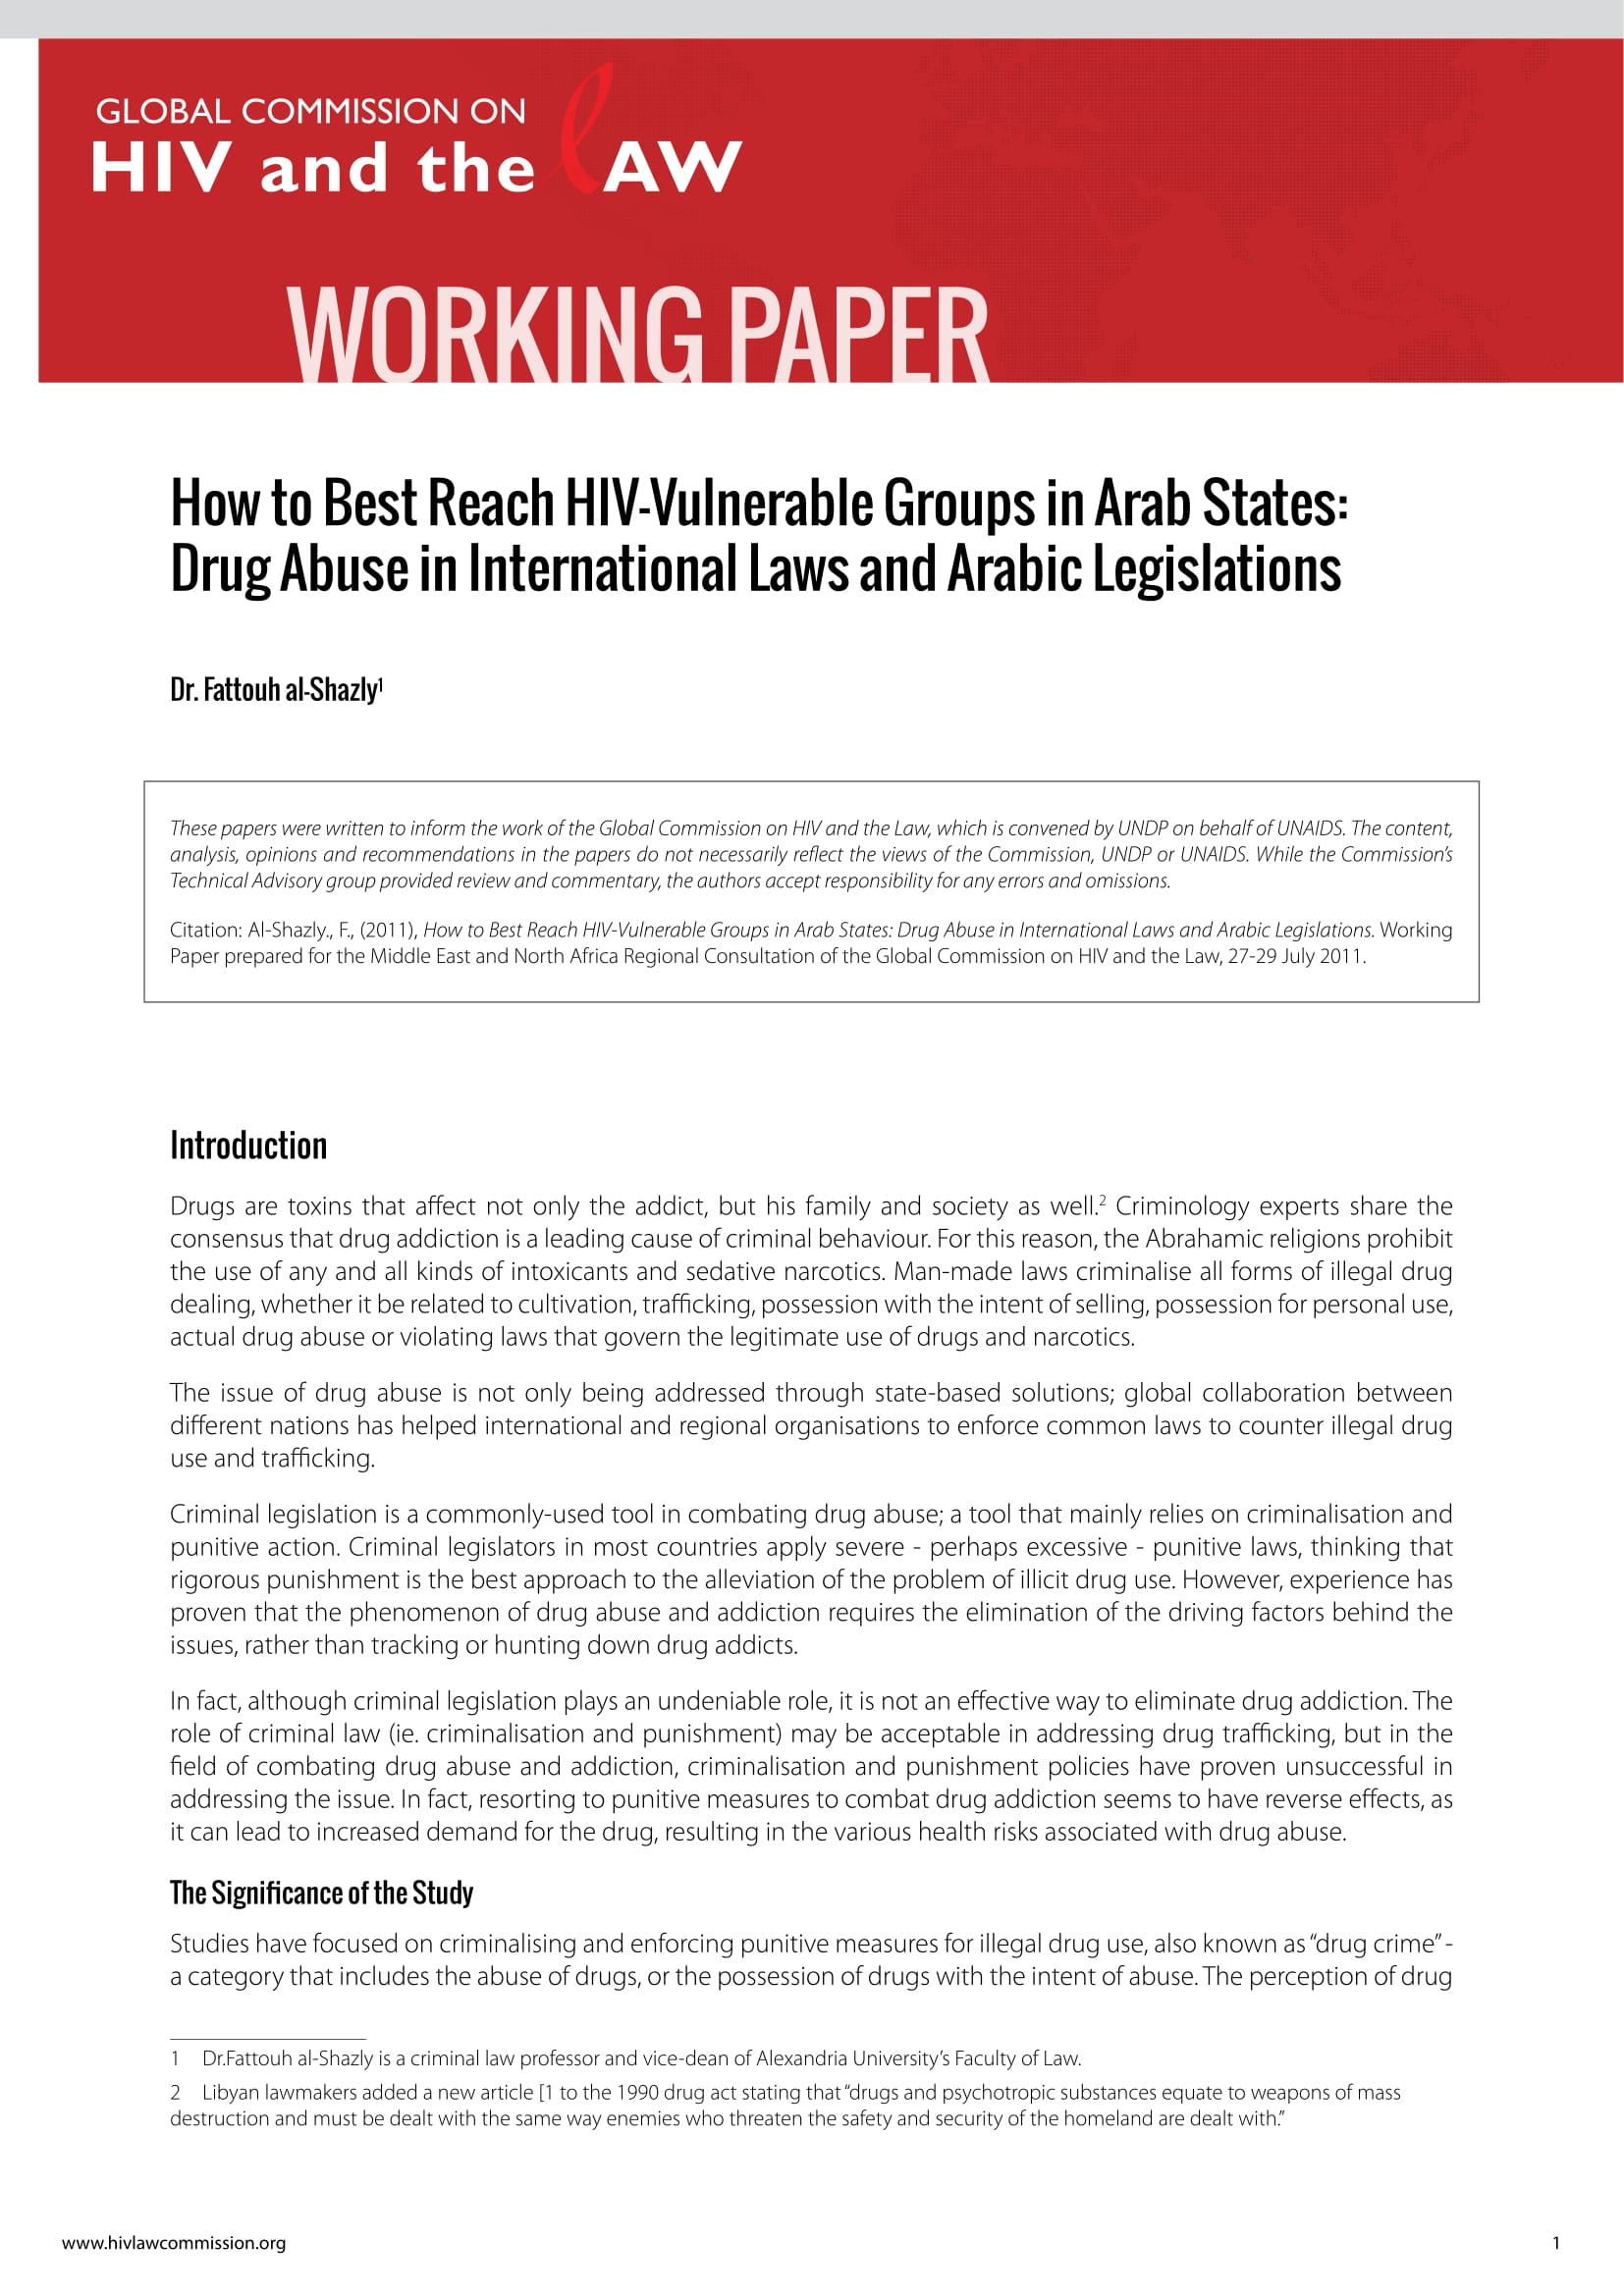 How to Best Reach HIV-Vulnerable Groups in Arab States: Drug Abuse in International Laws and Arabic Legislations